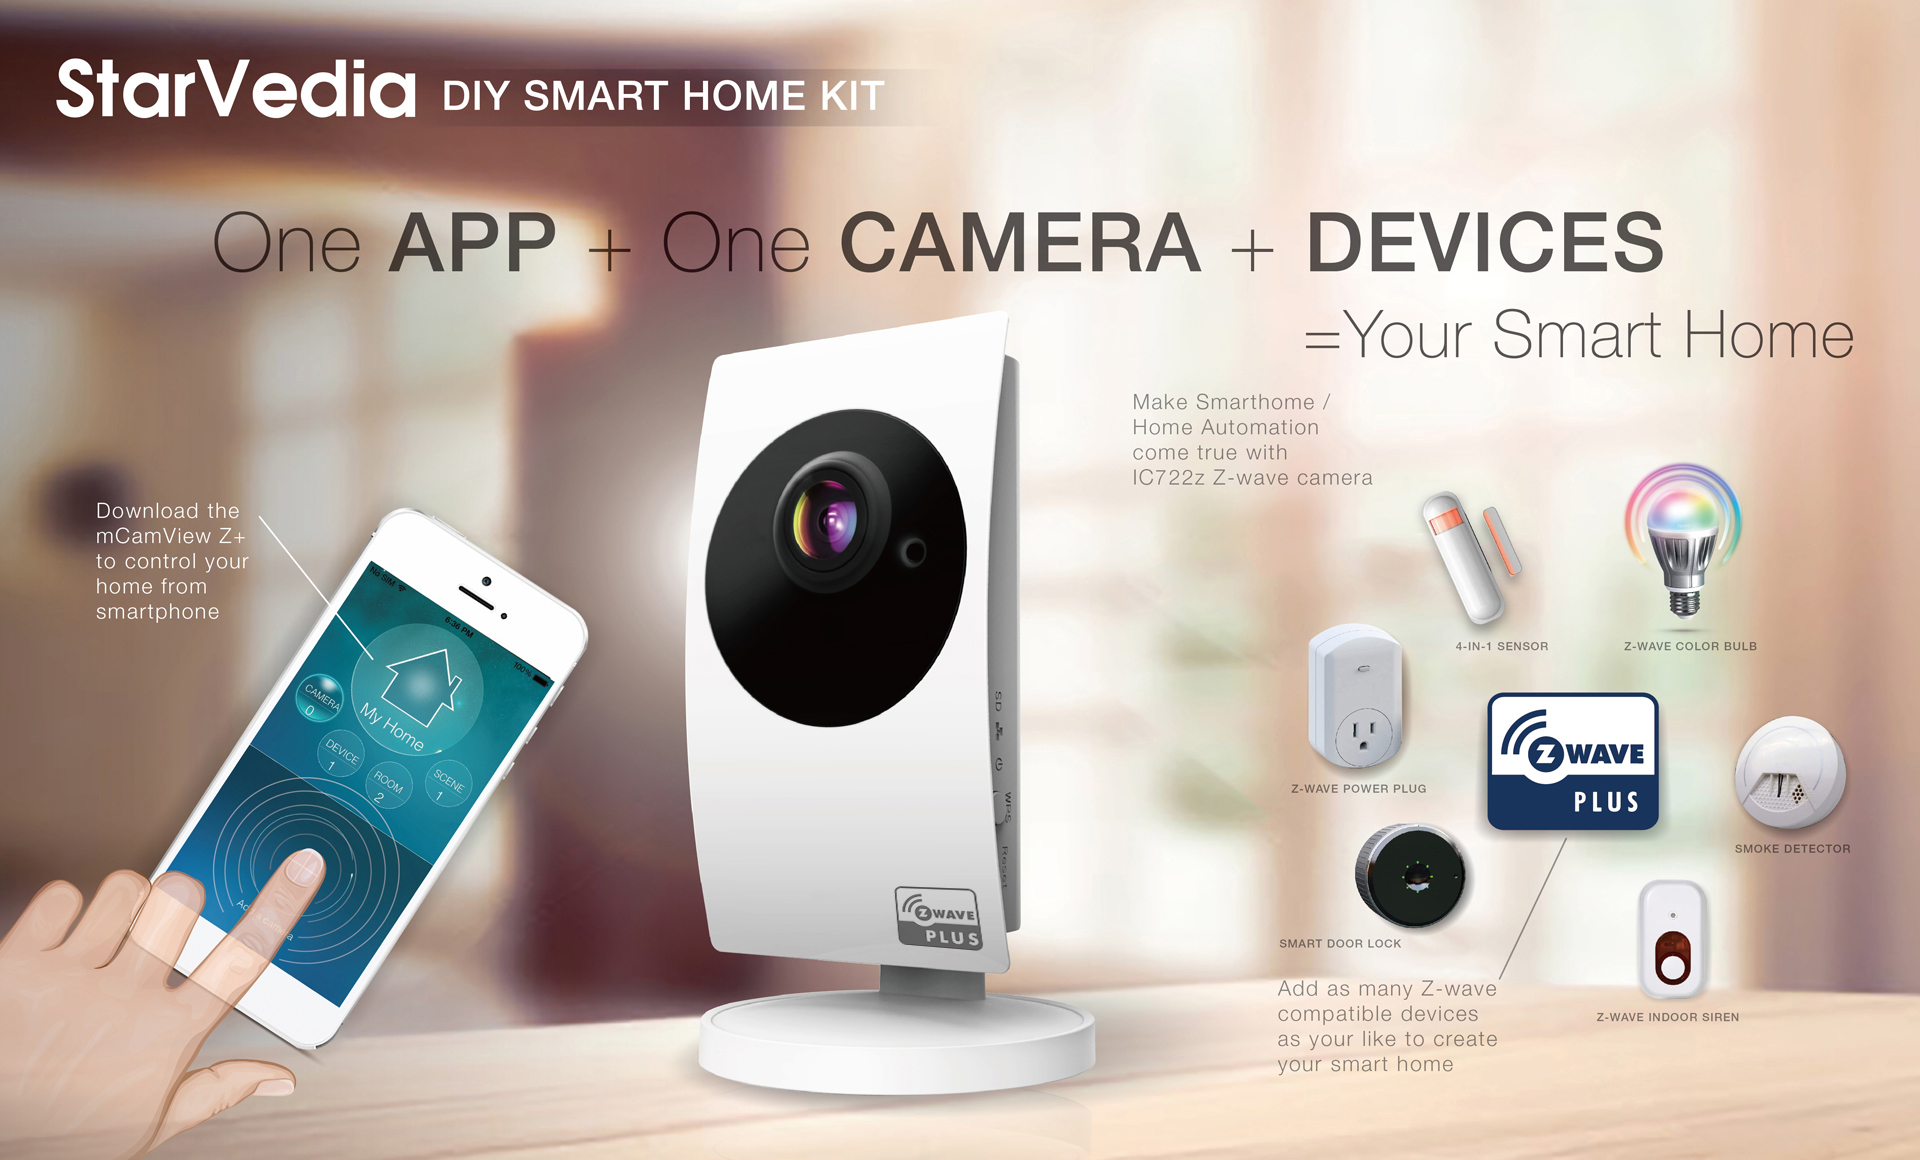 Smart Home on a camera